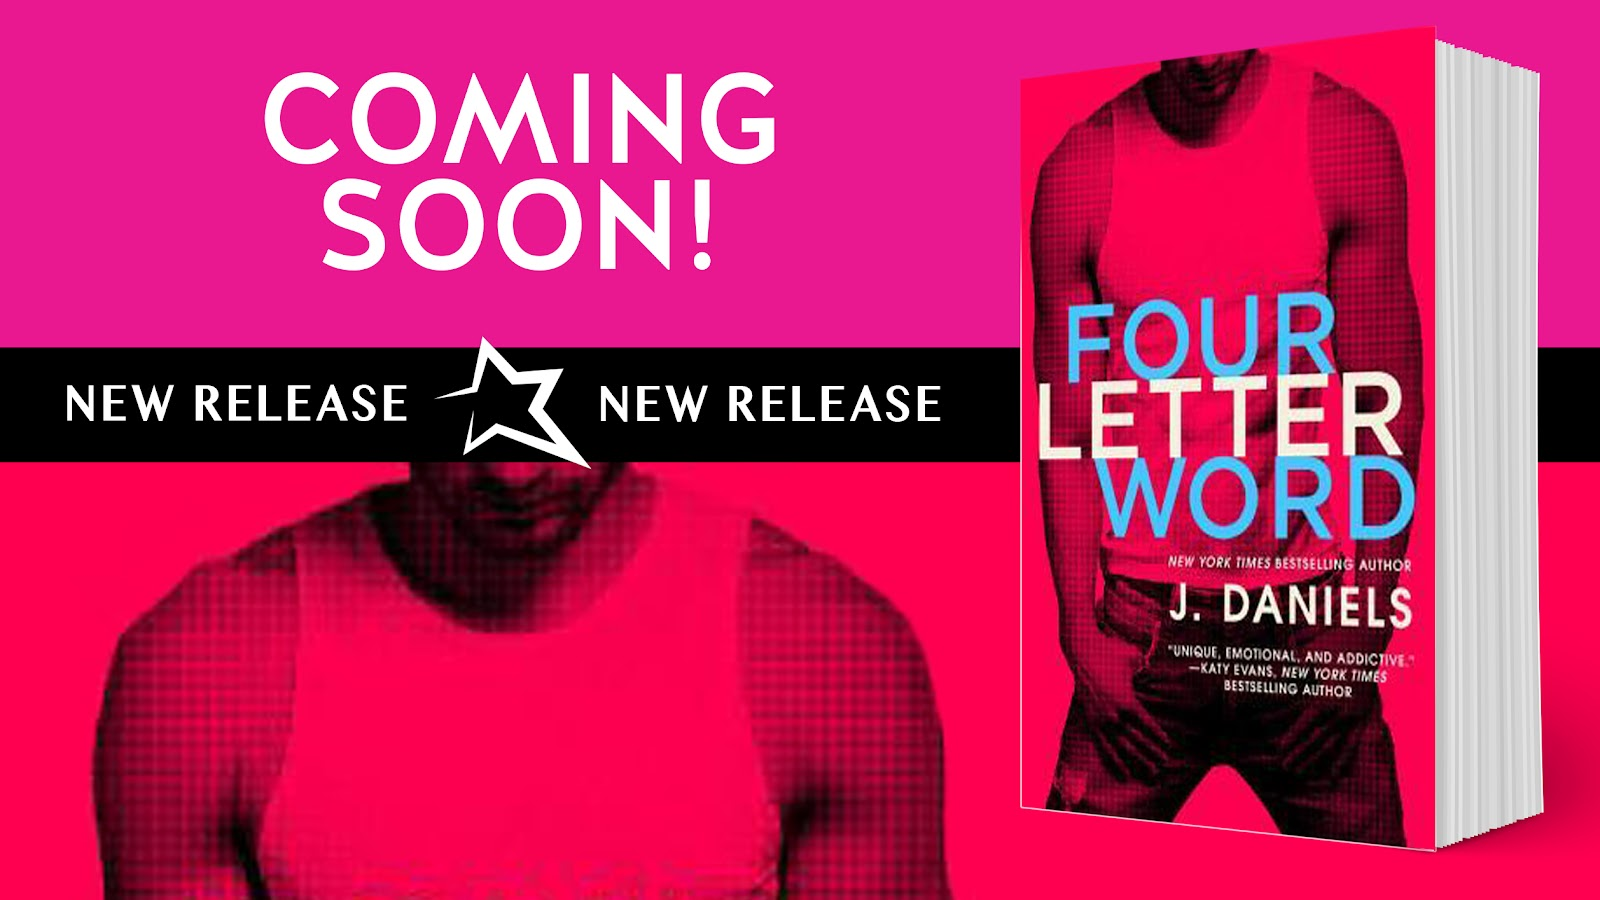 FOUR_LETTER_WORD_COMING_SOON.jpg